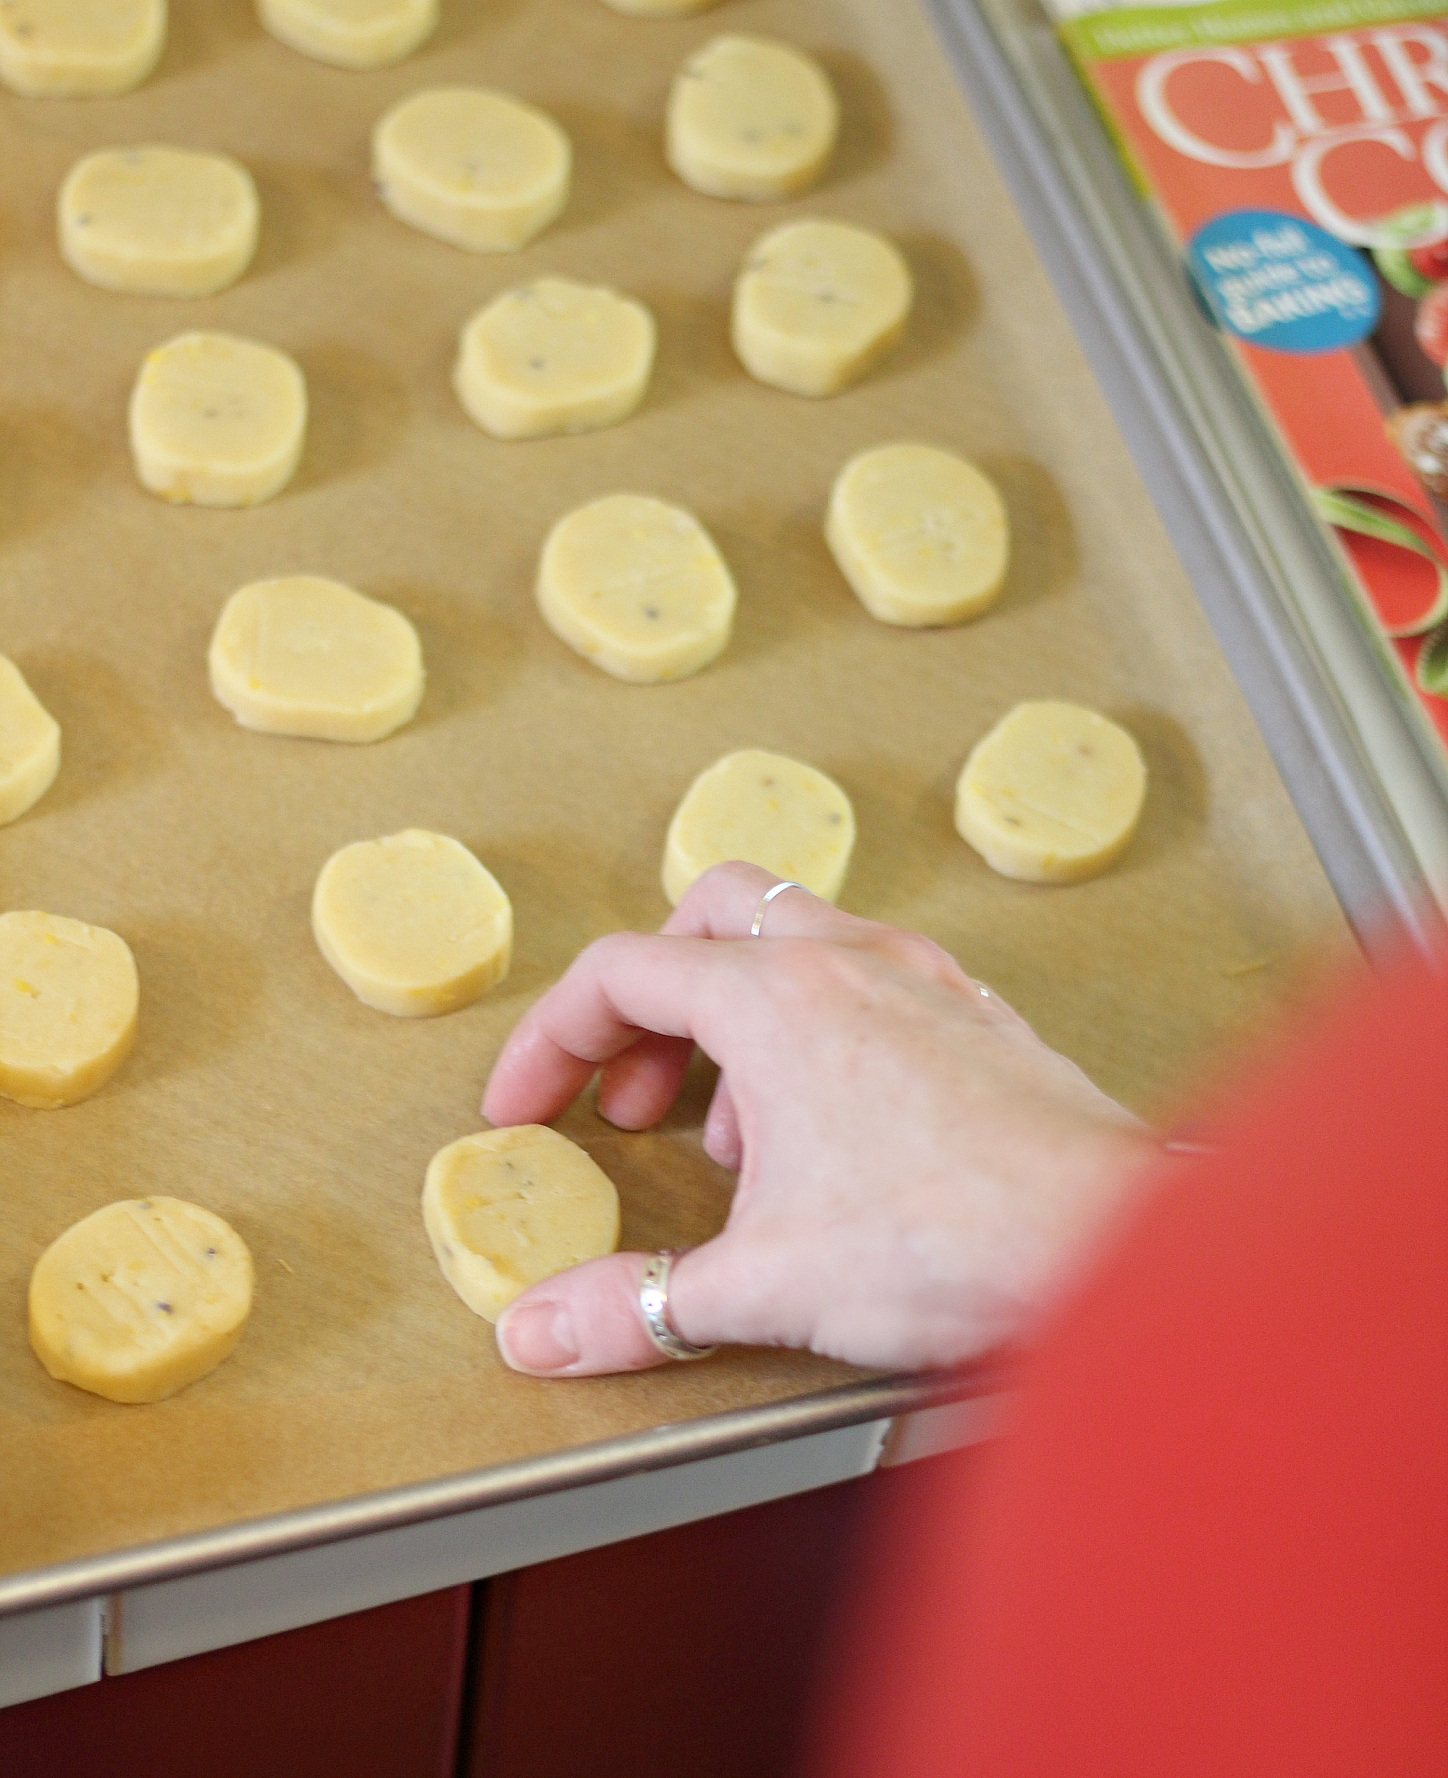 Placing the shortbread dough rounds on parchment for baking.